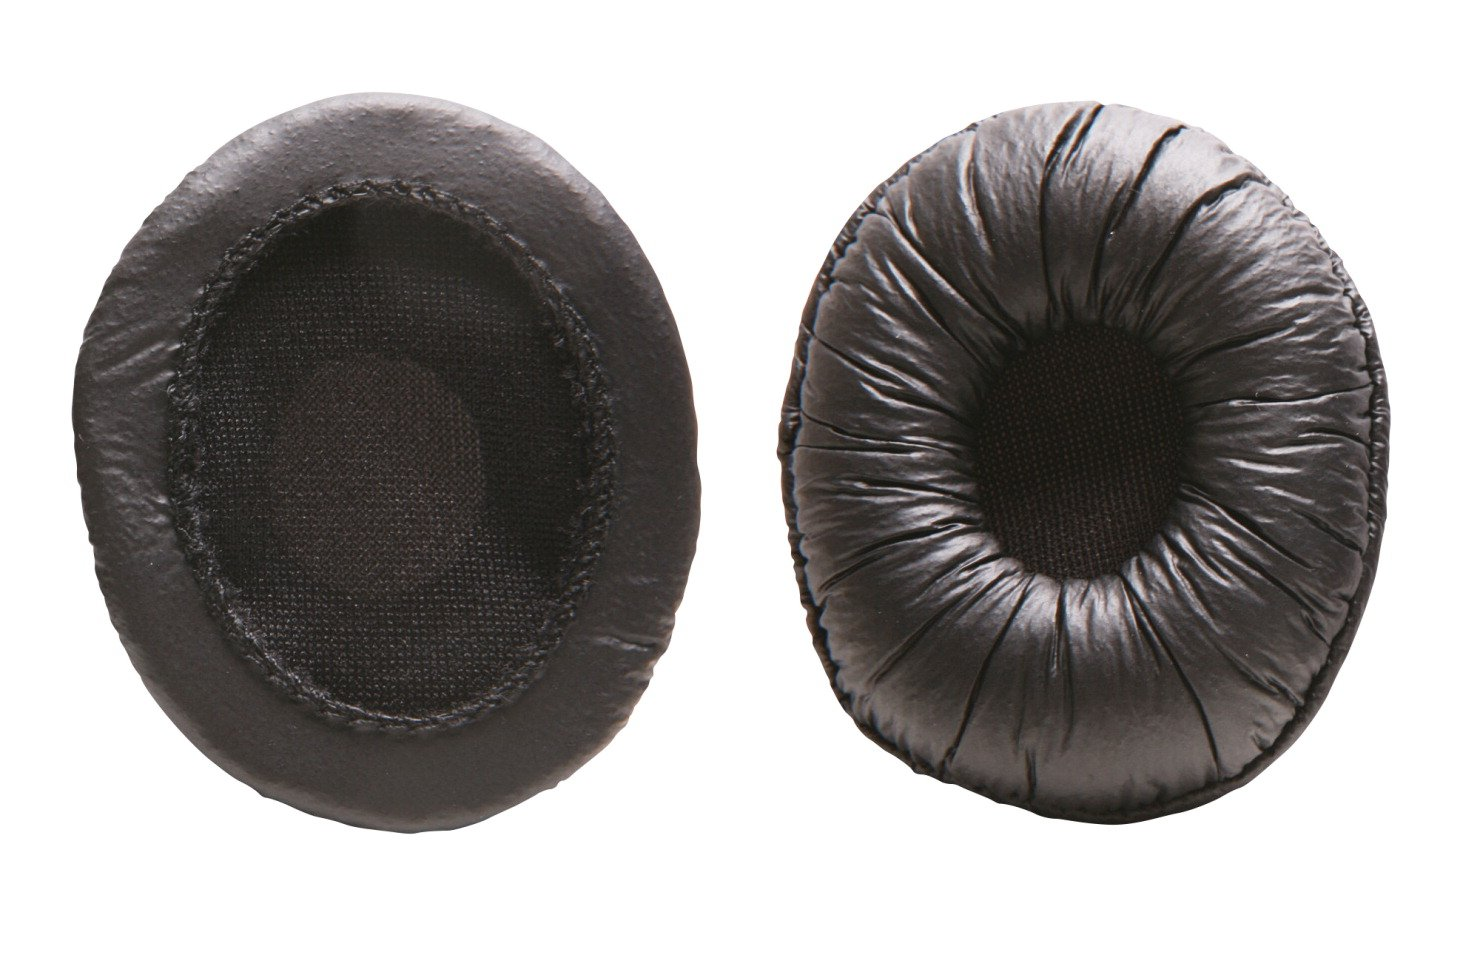 Califone 335819 Replacement Ear Pad for Use with Multimedia Headphone, Black